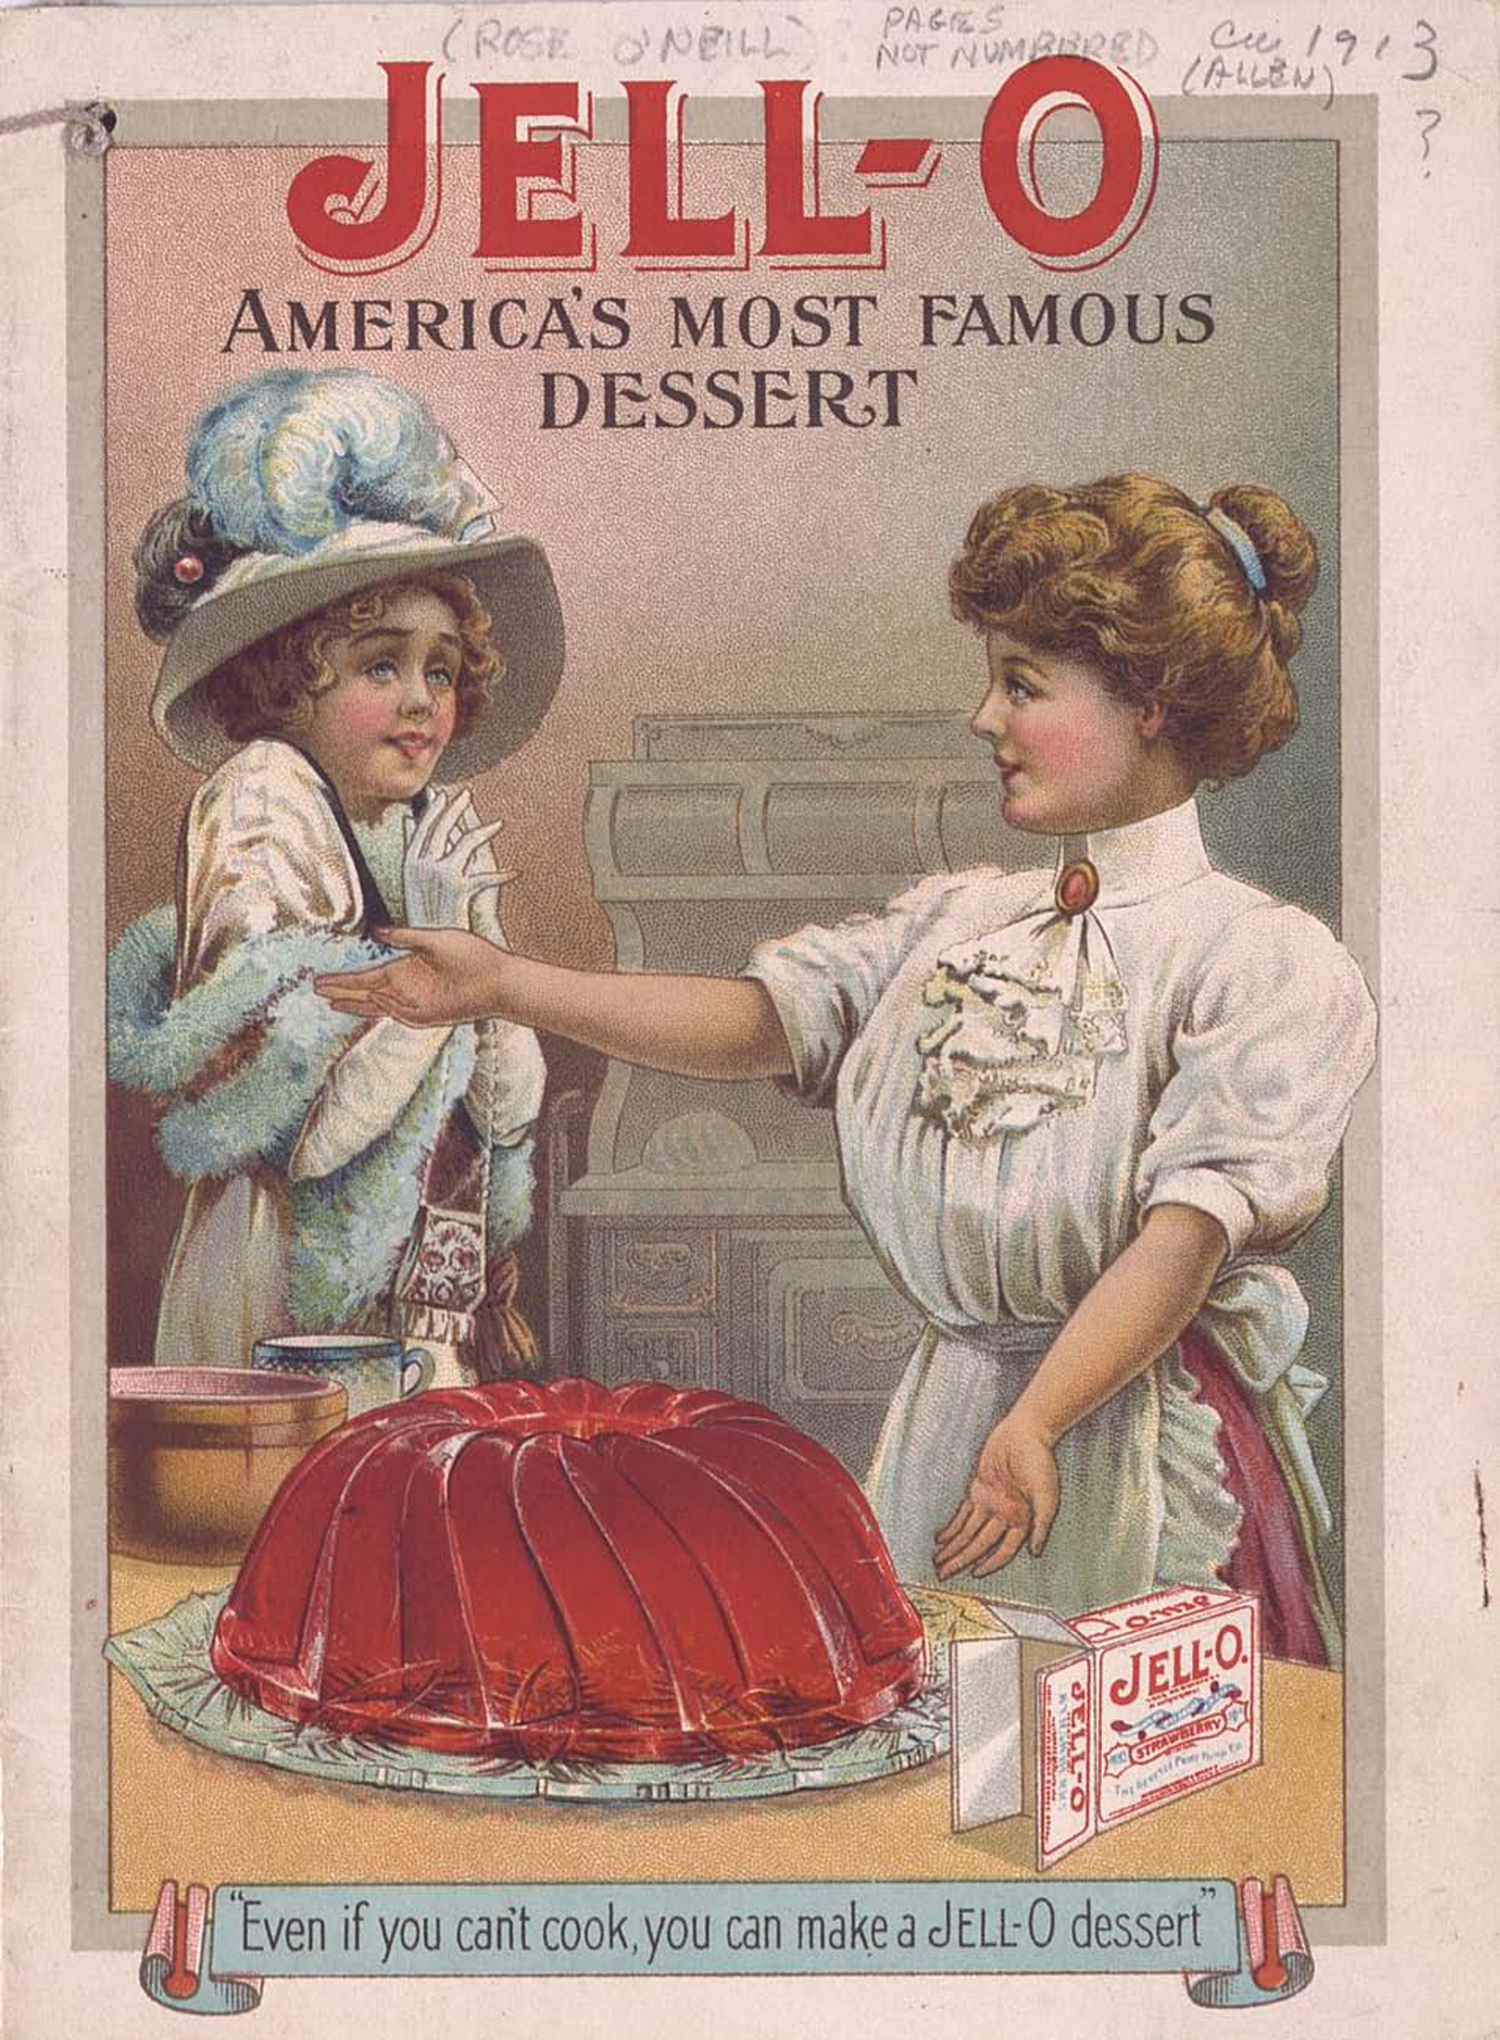 Two women and a large Jell-O mold